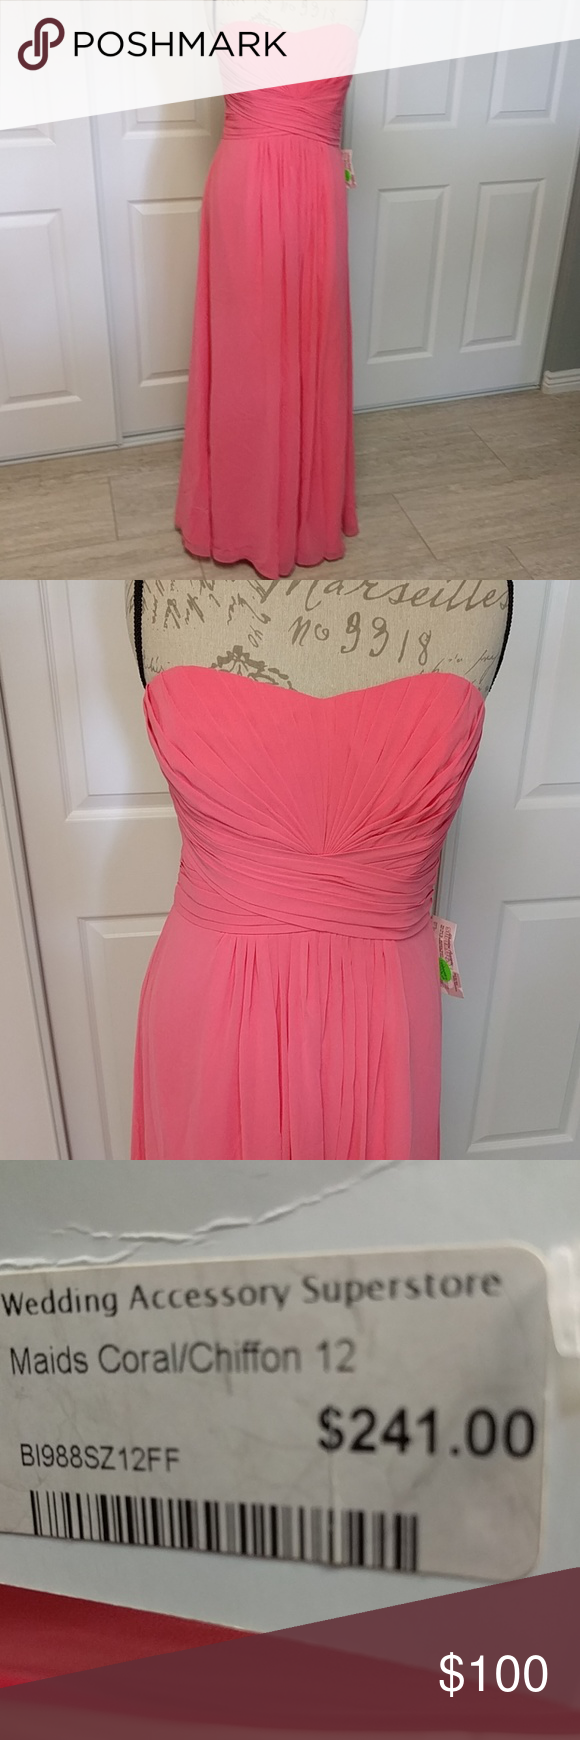 Stunning coral chiffon formal gown NWT